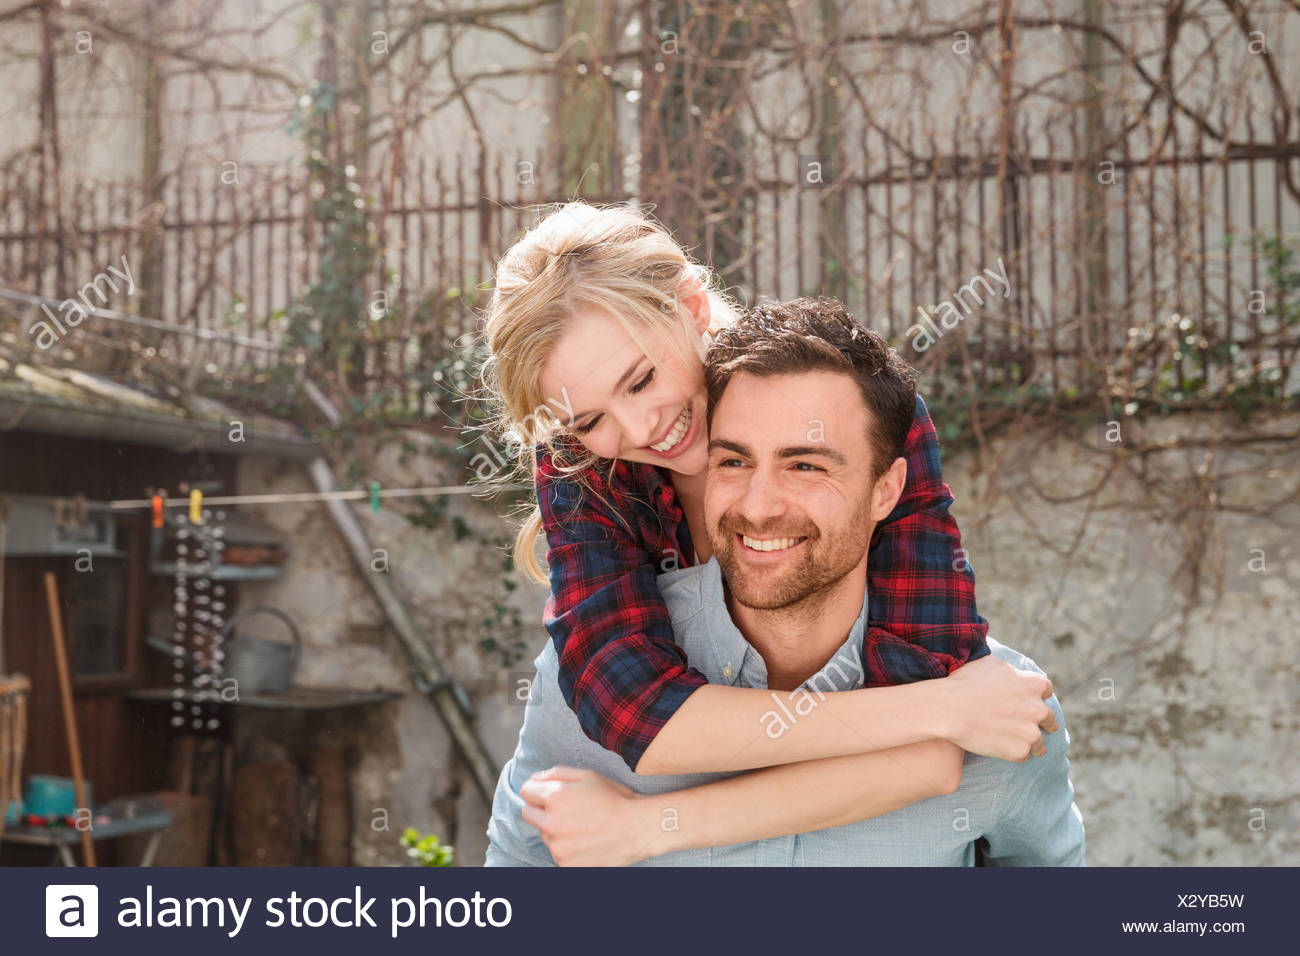 Man giving woman piggyback smiling - Stock Image